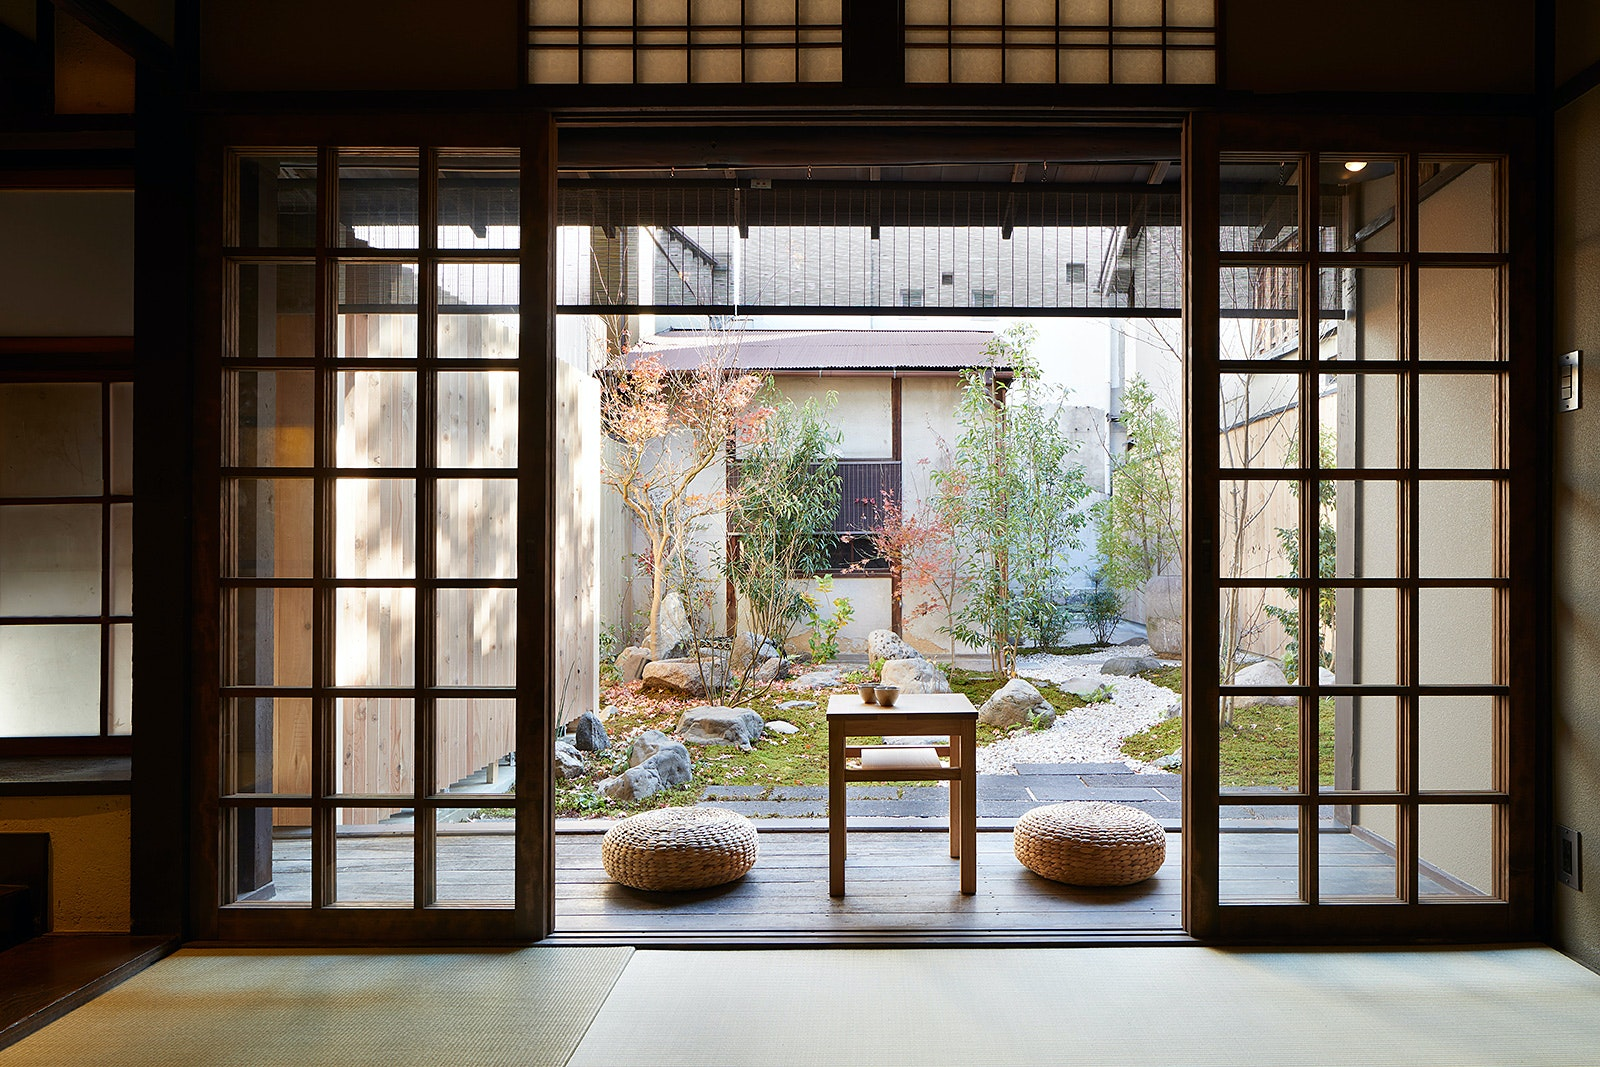 B.L.U.E. Architecture Studiou0027s Makeover Emphasizes The Essence Of  Traditional Kyoto Culture: The Courtyard. ©